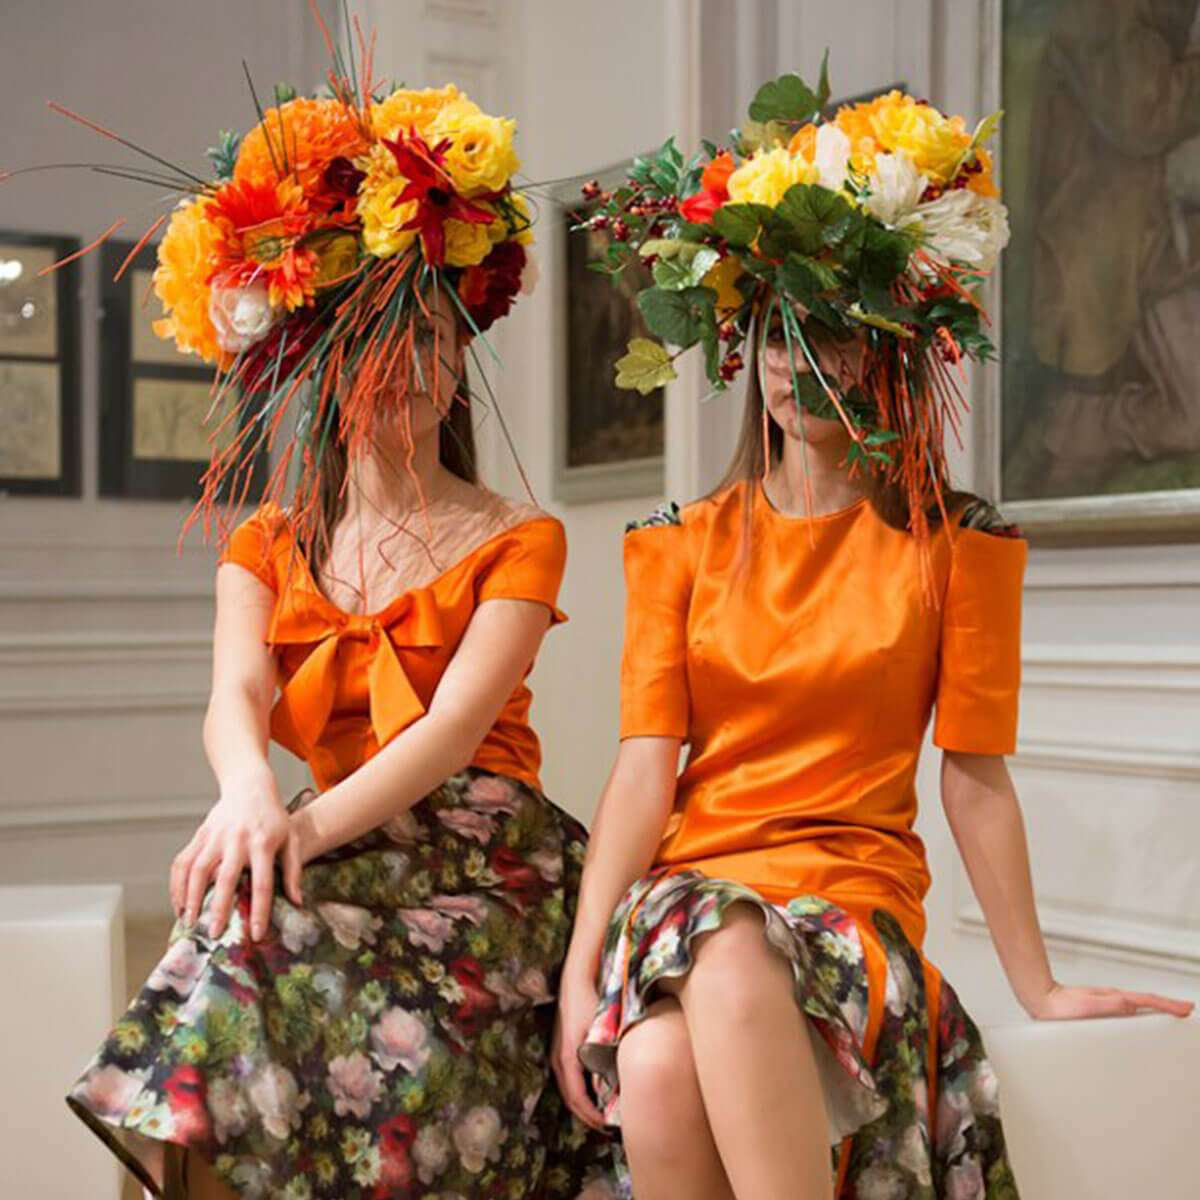 Valeria_Valencer_Hats_flowers_fashion005